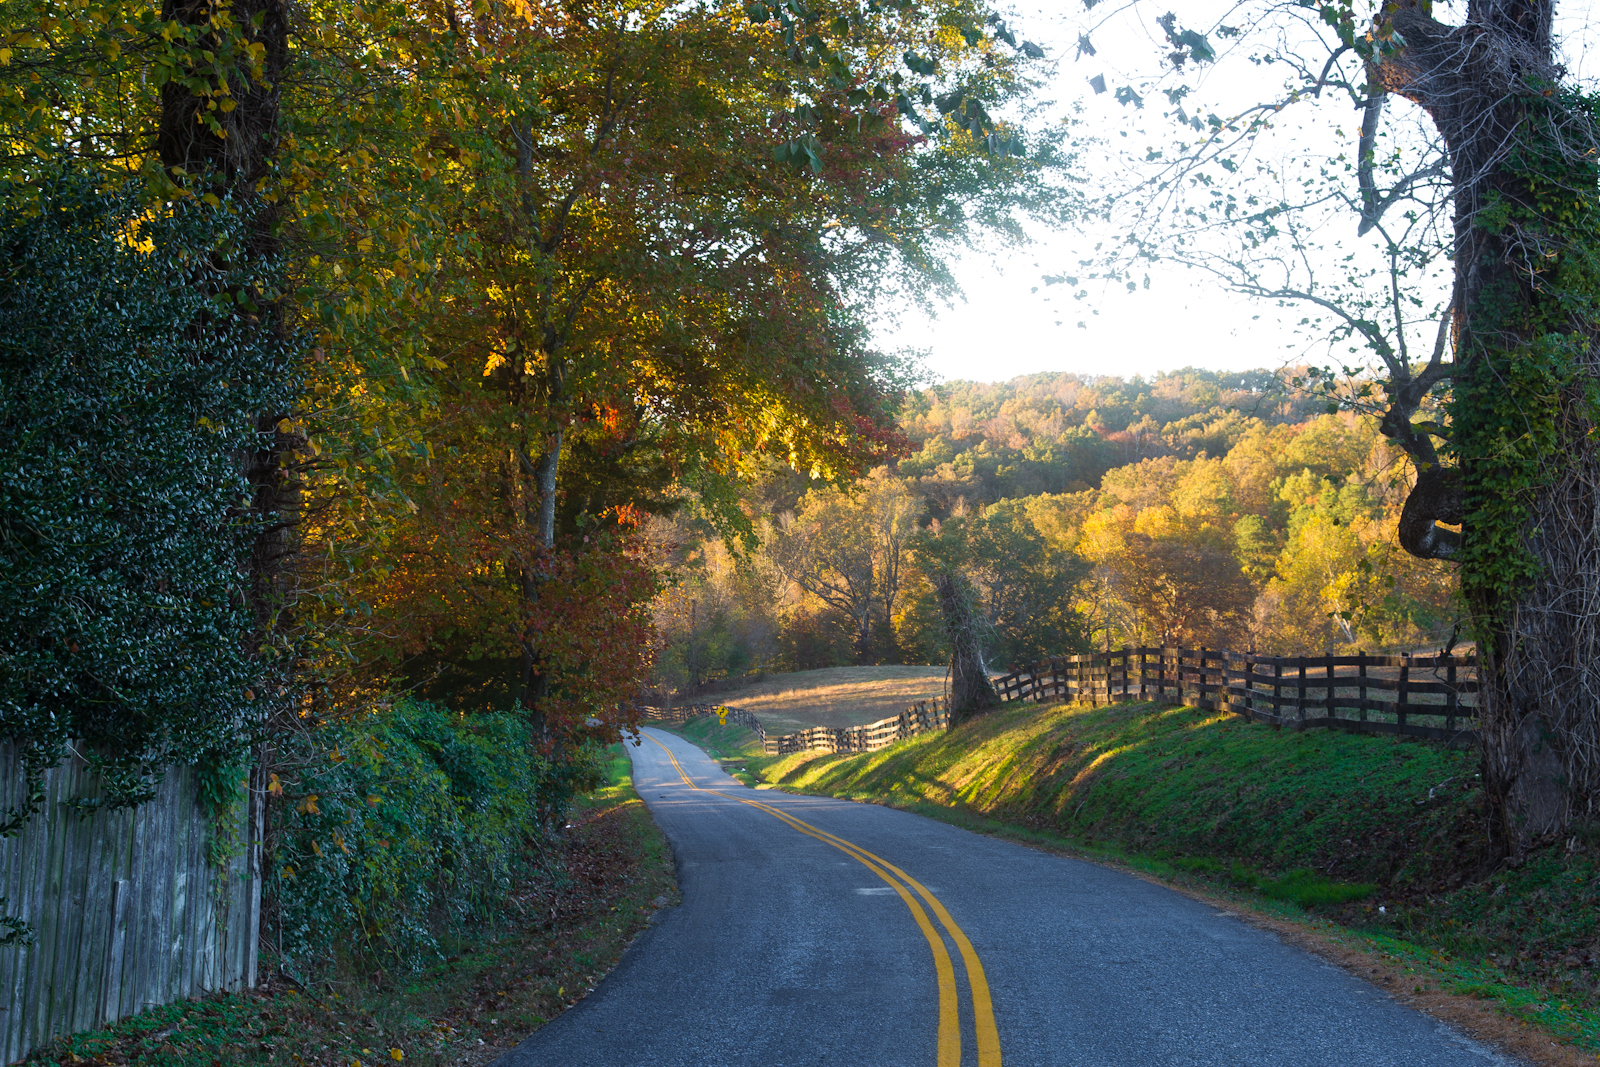 Autumn-country-backroad-50-of-1-2